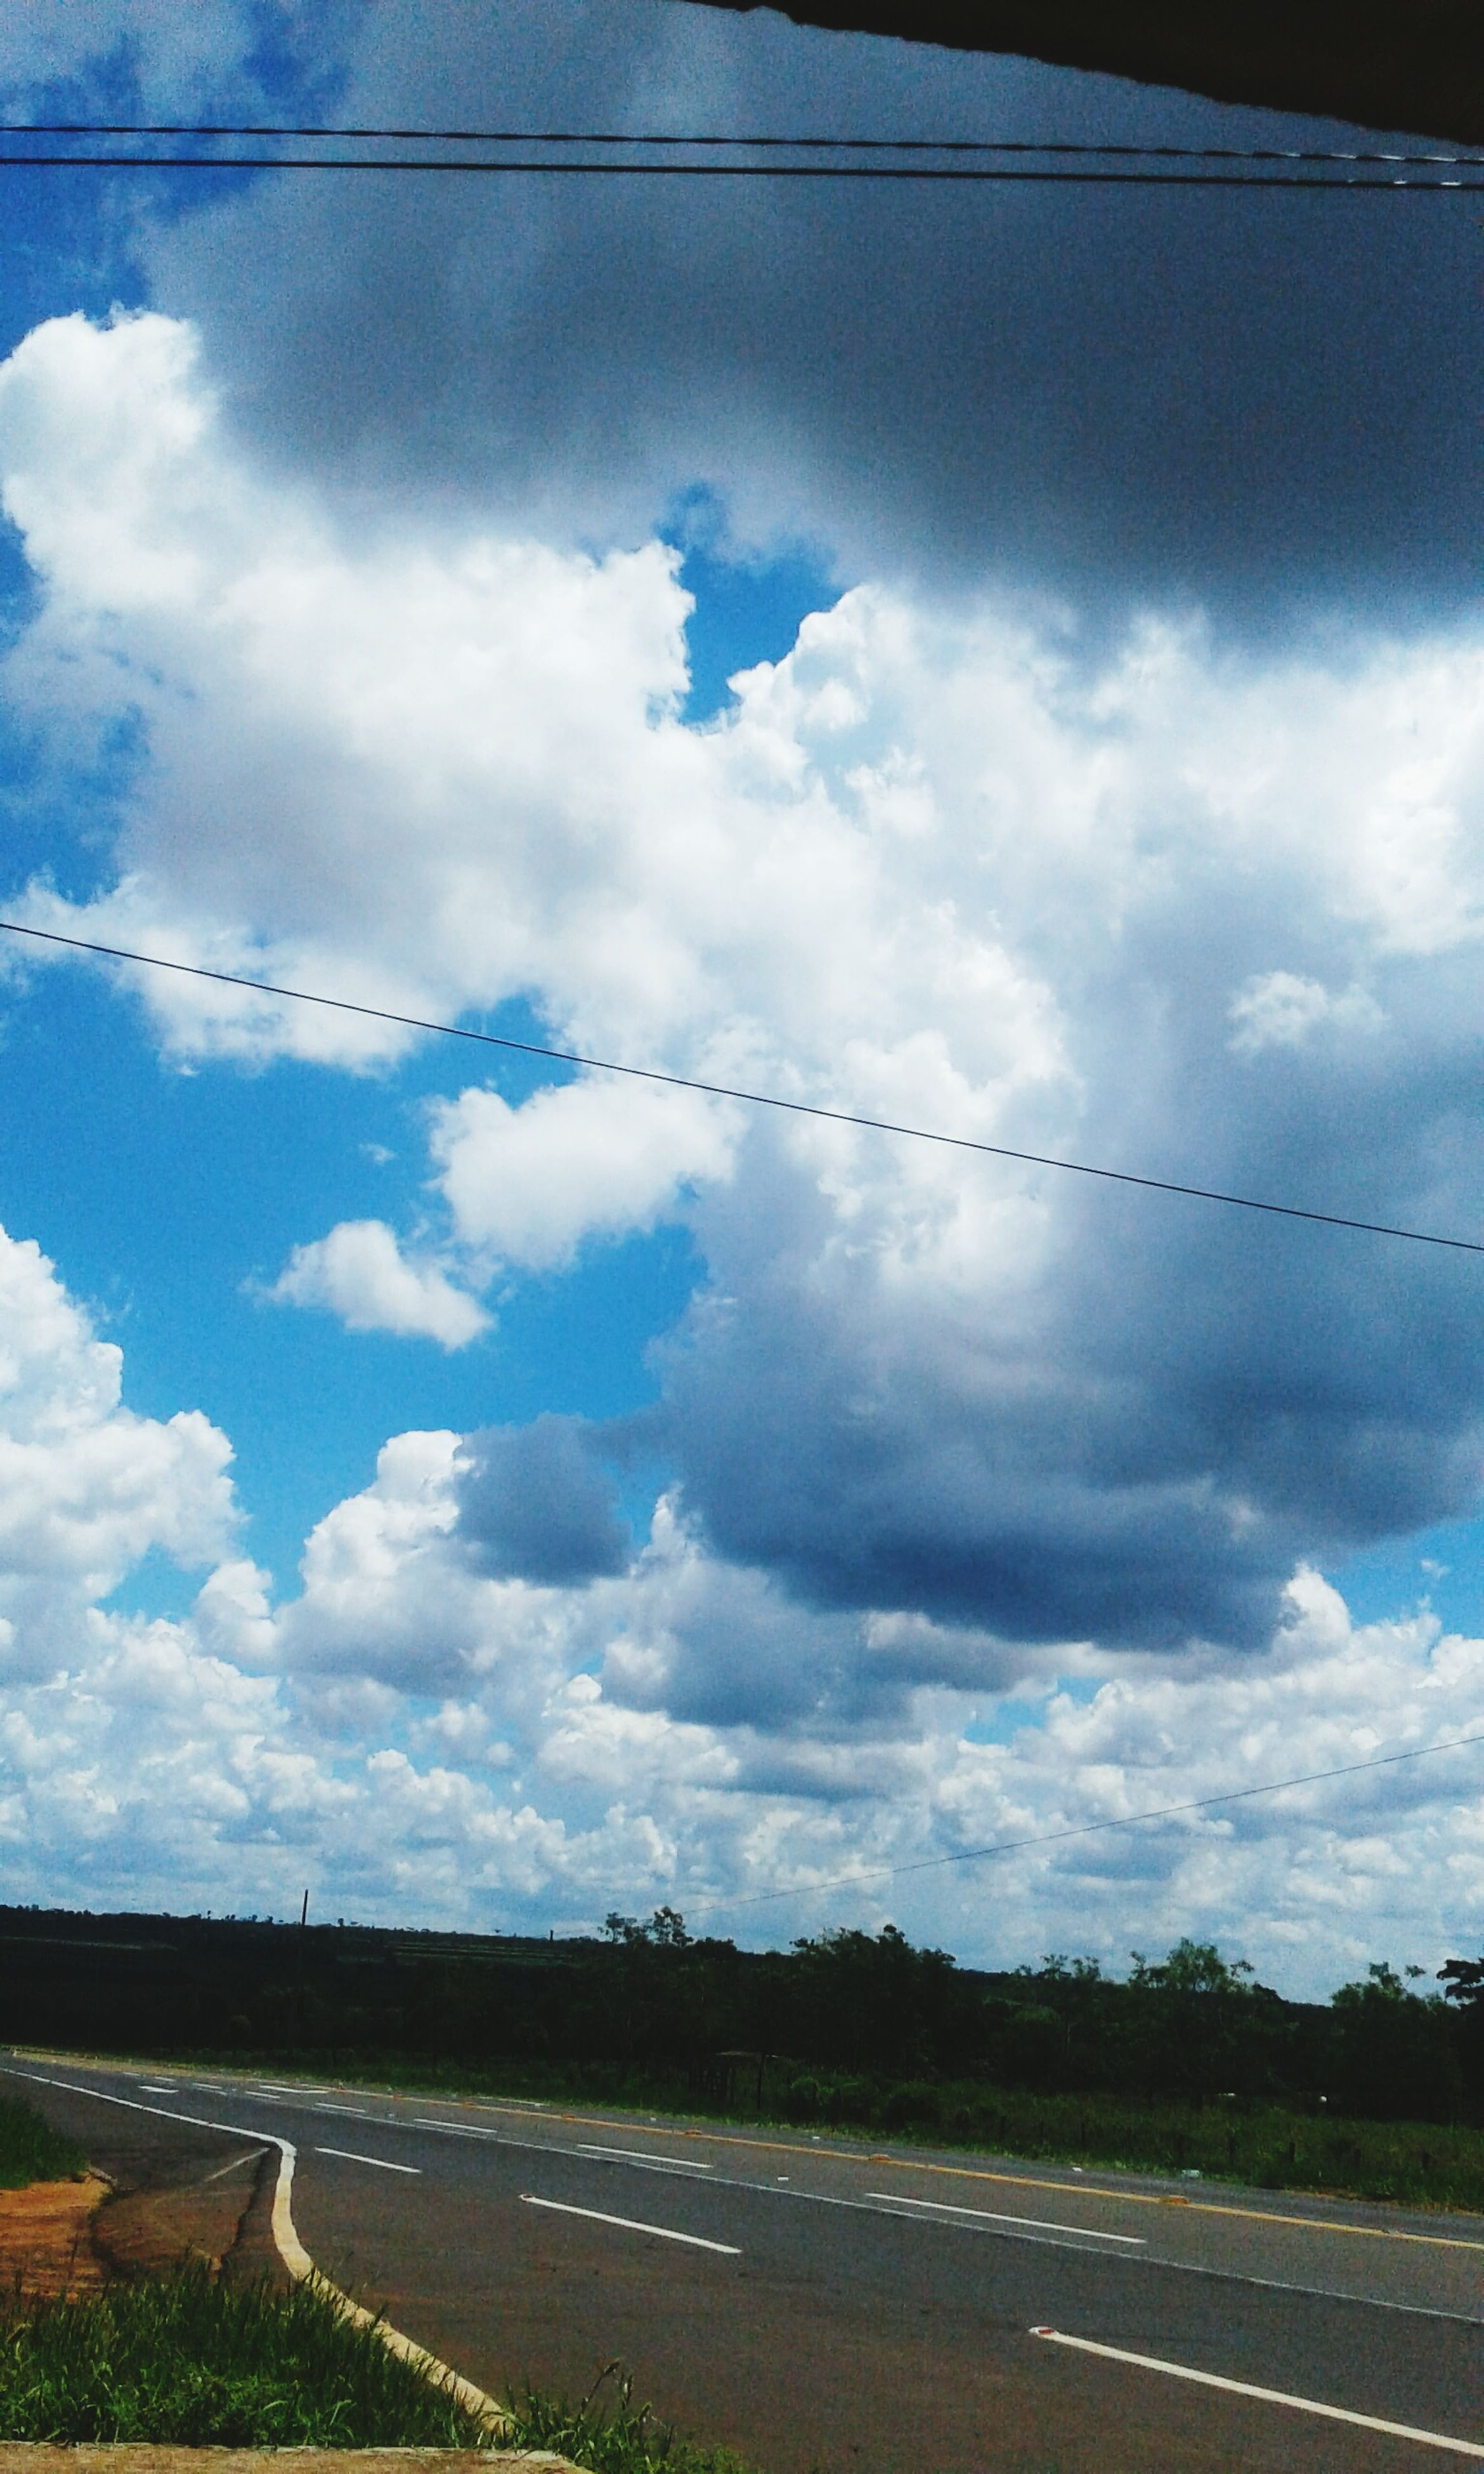 cloud - sky, sky, blue, no people, outdoors, scenics, day, nature